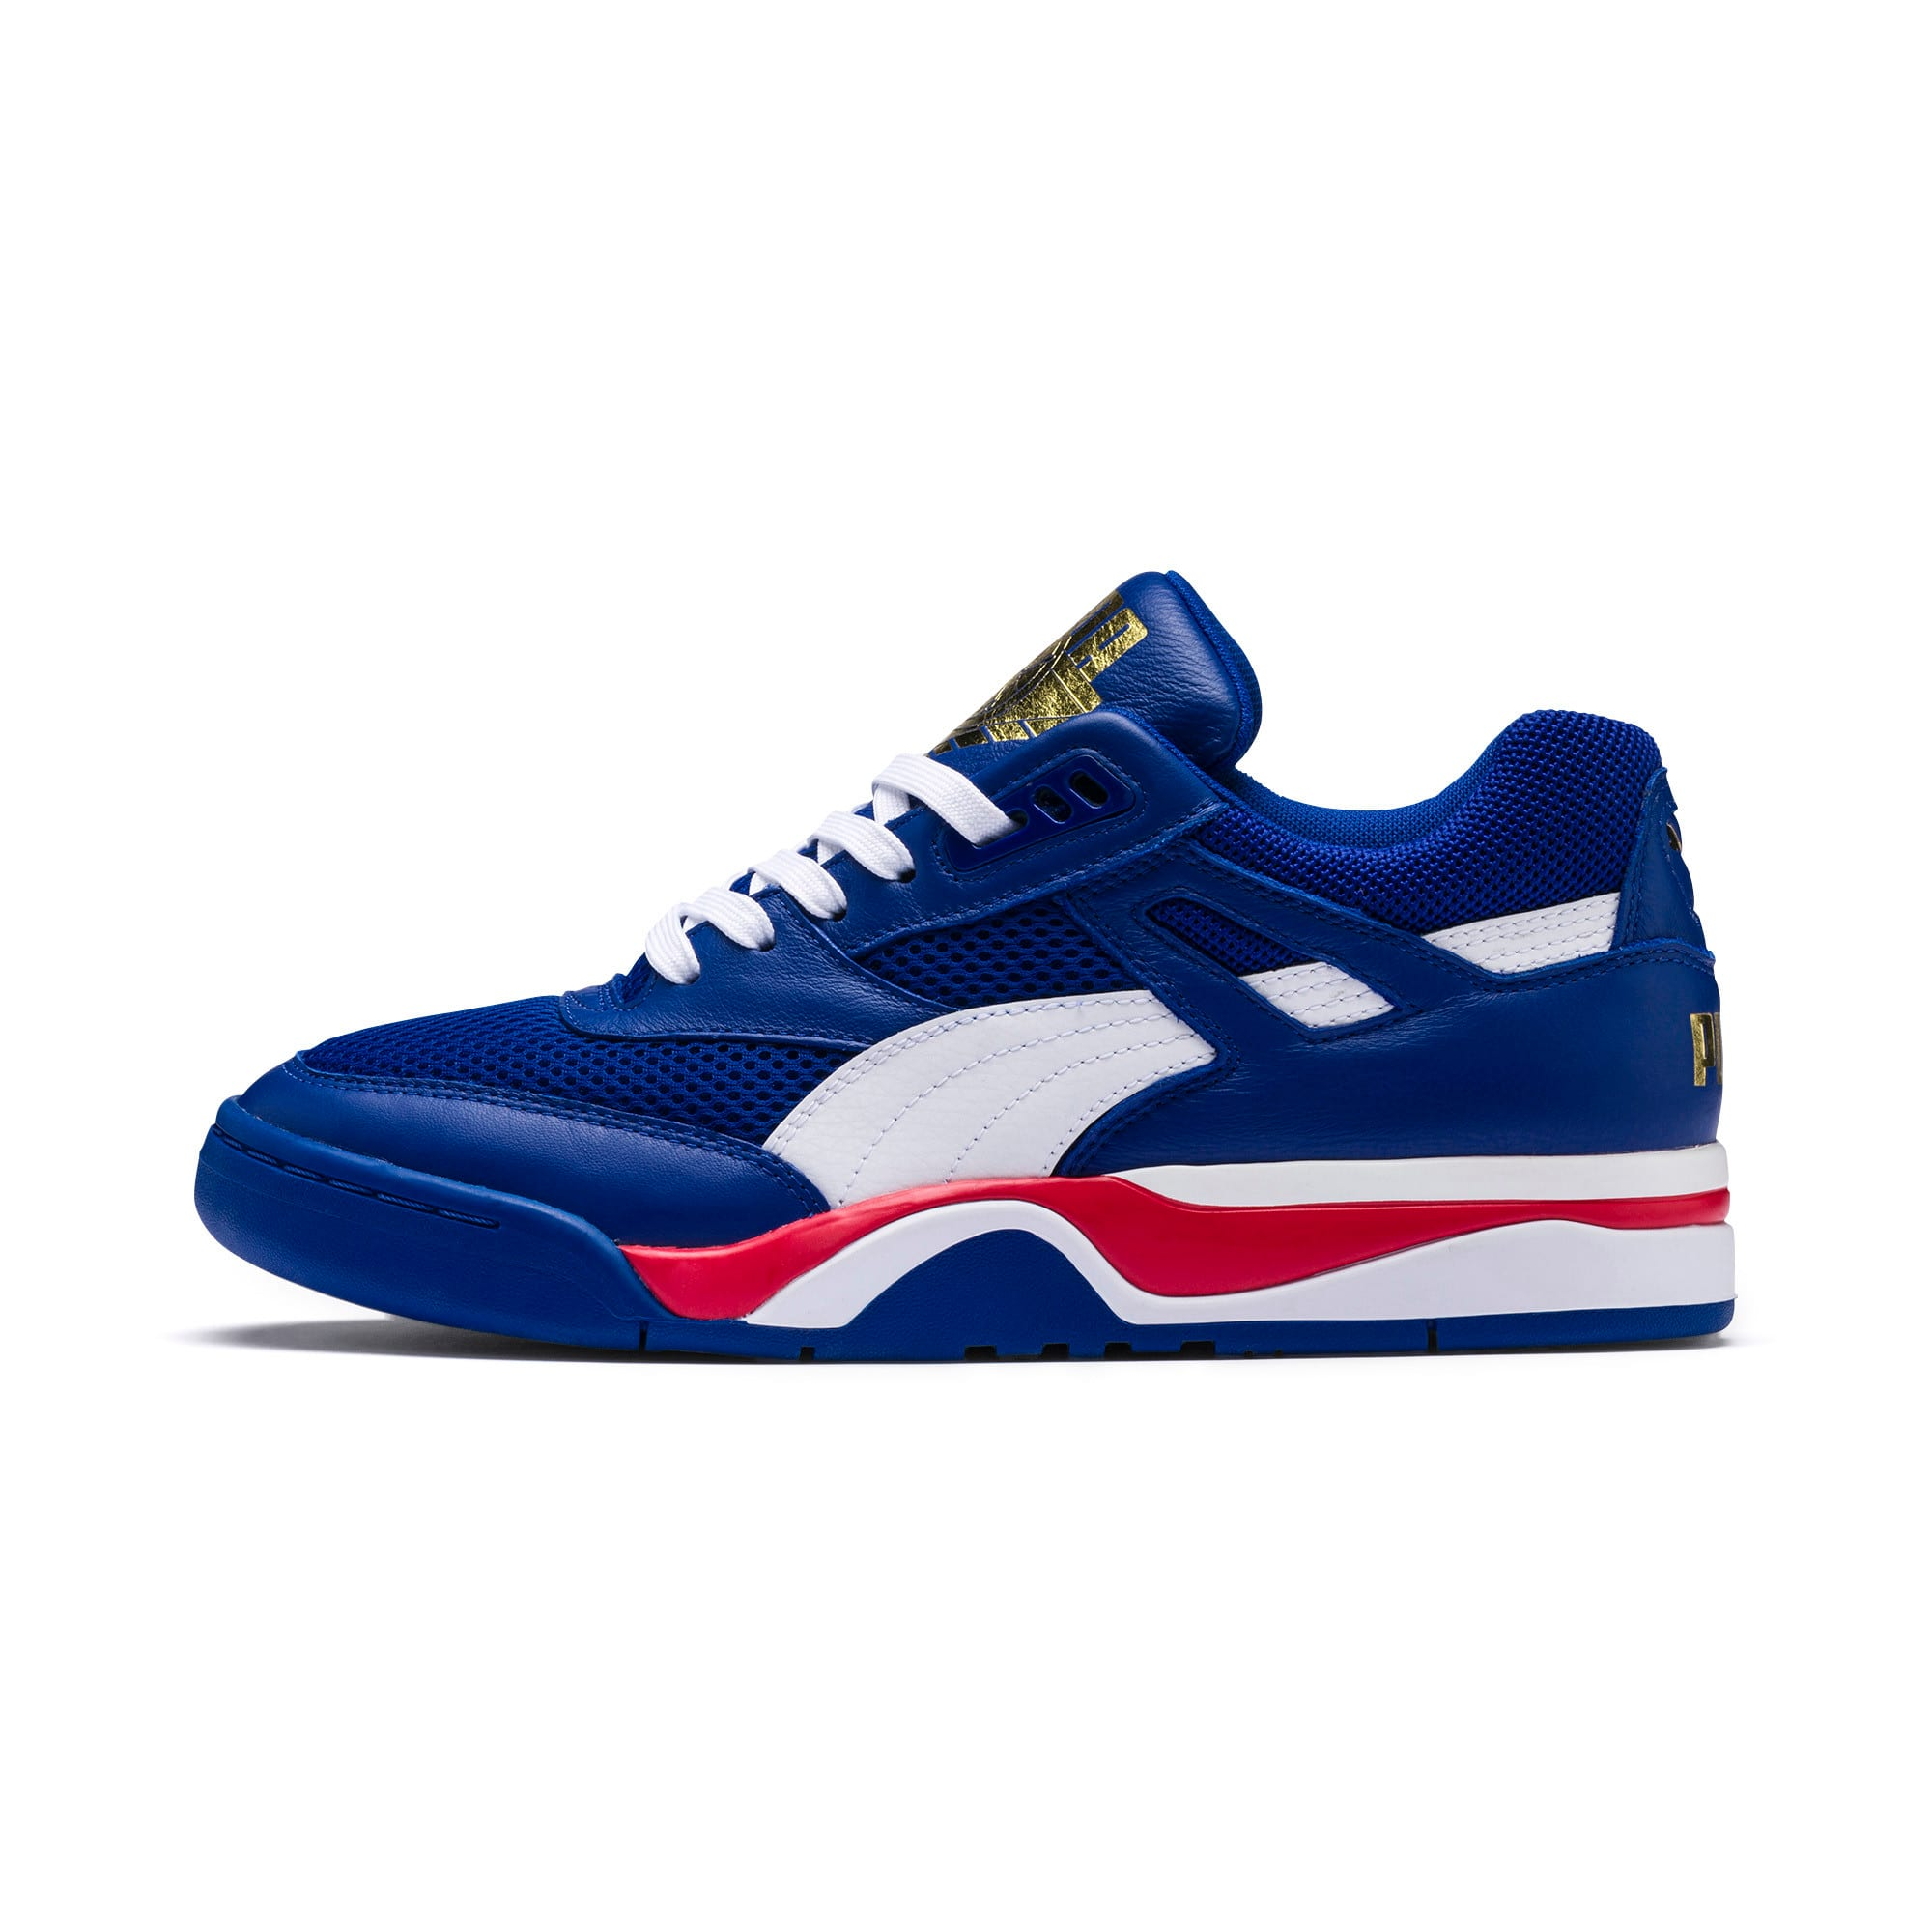 Thumbnail 1 of Palace Guard Finals Trainers, Surf The Web-Puma White-, medium